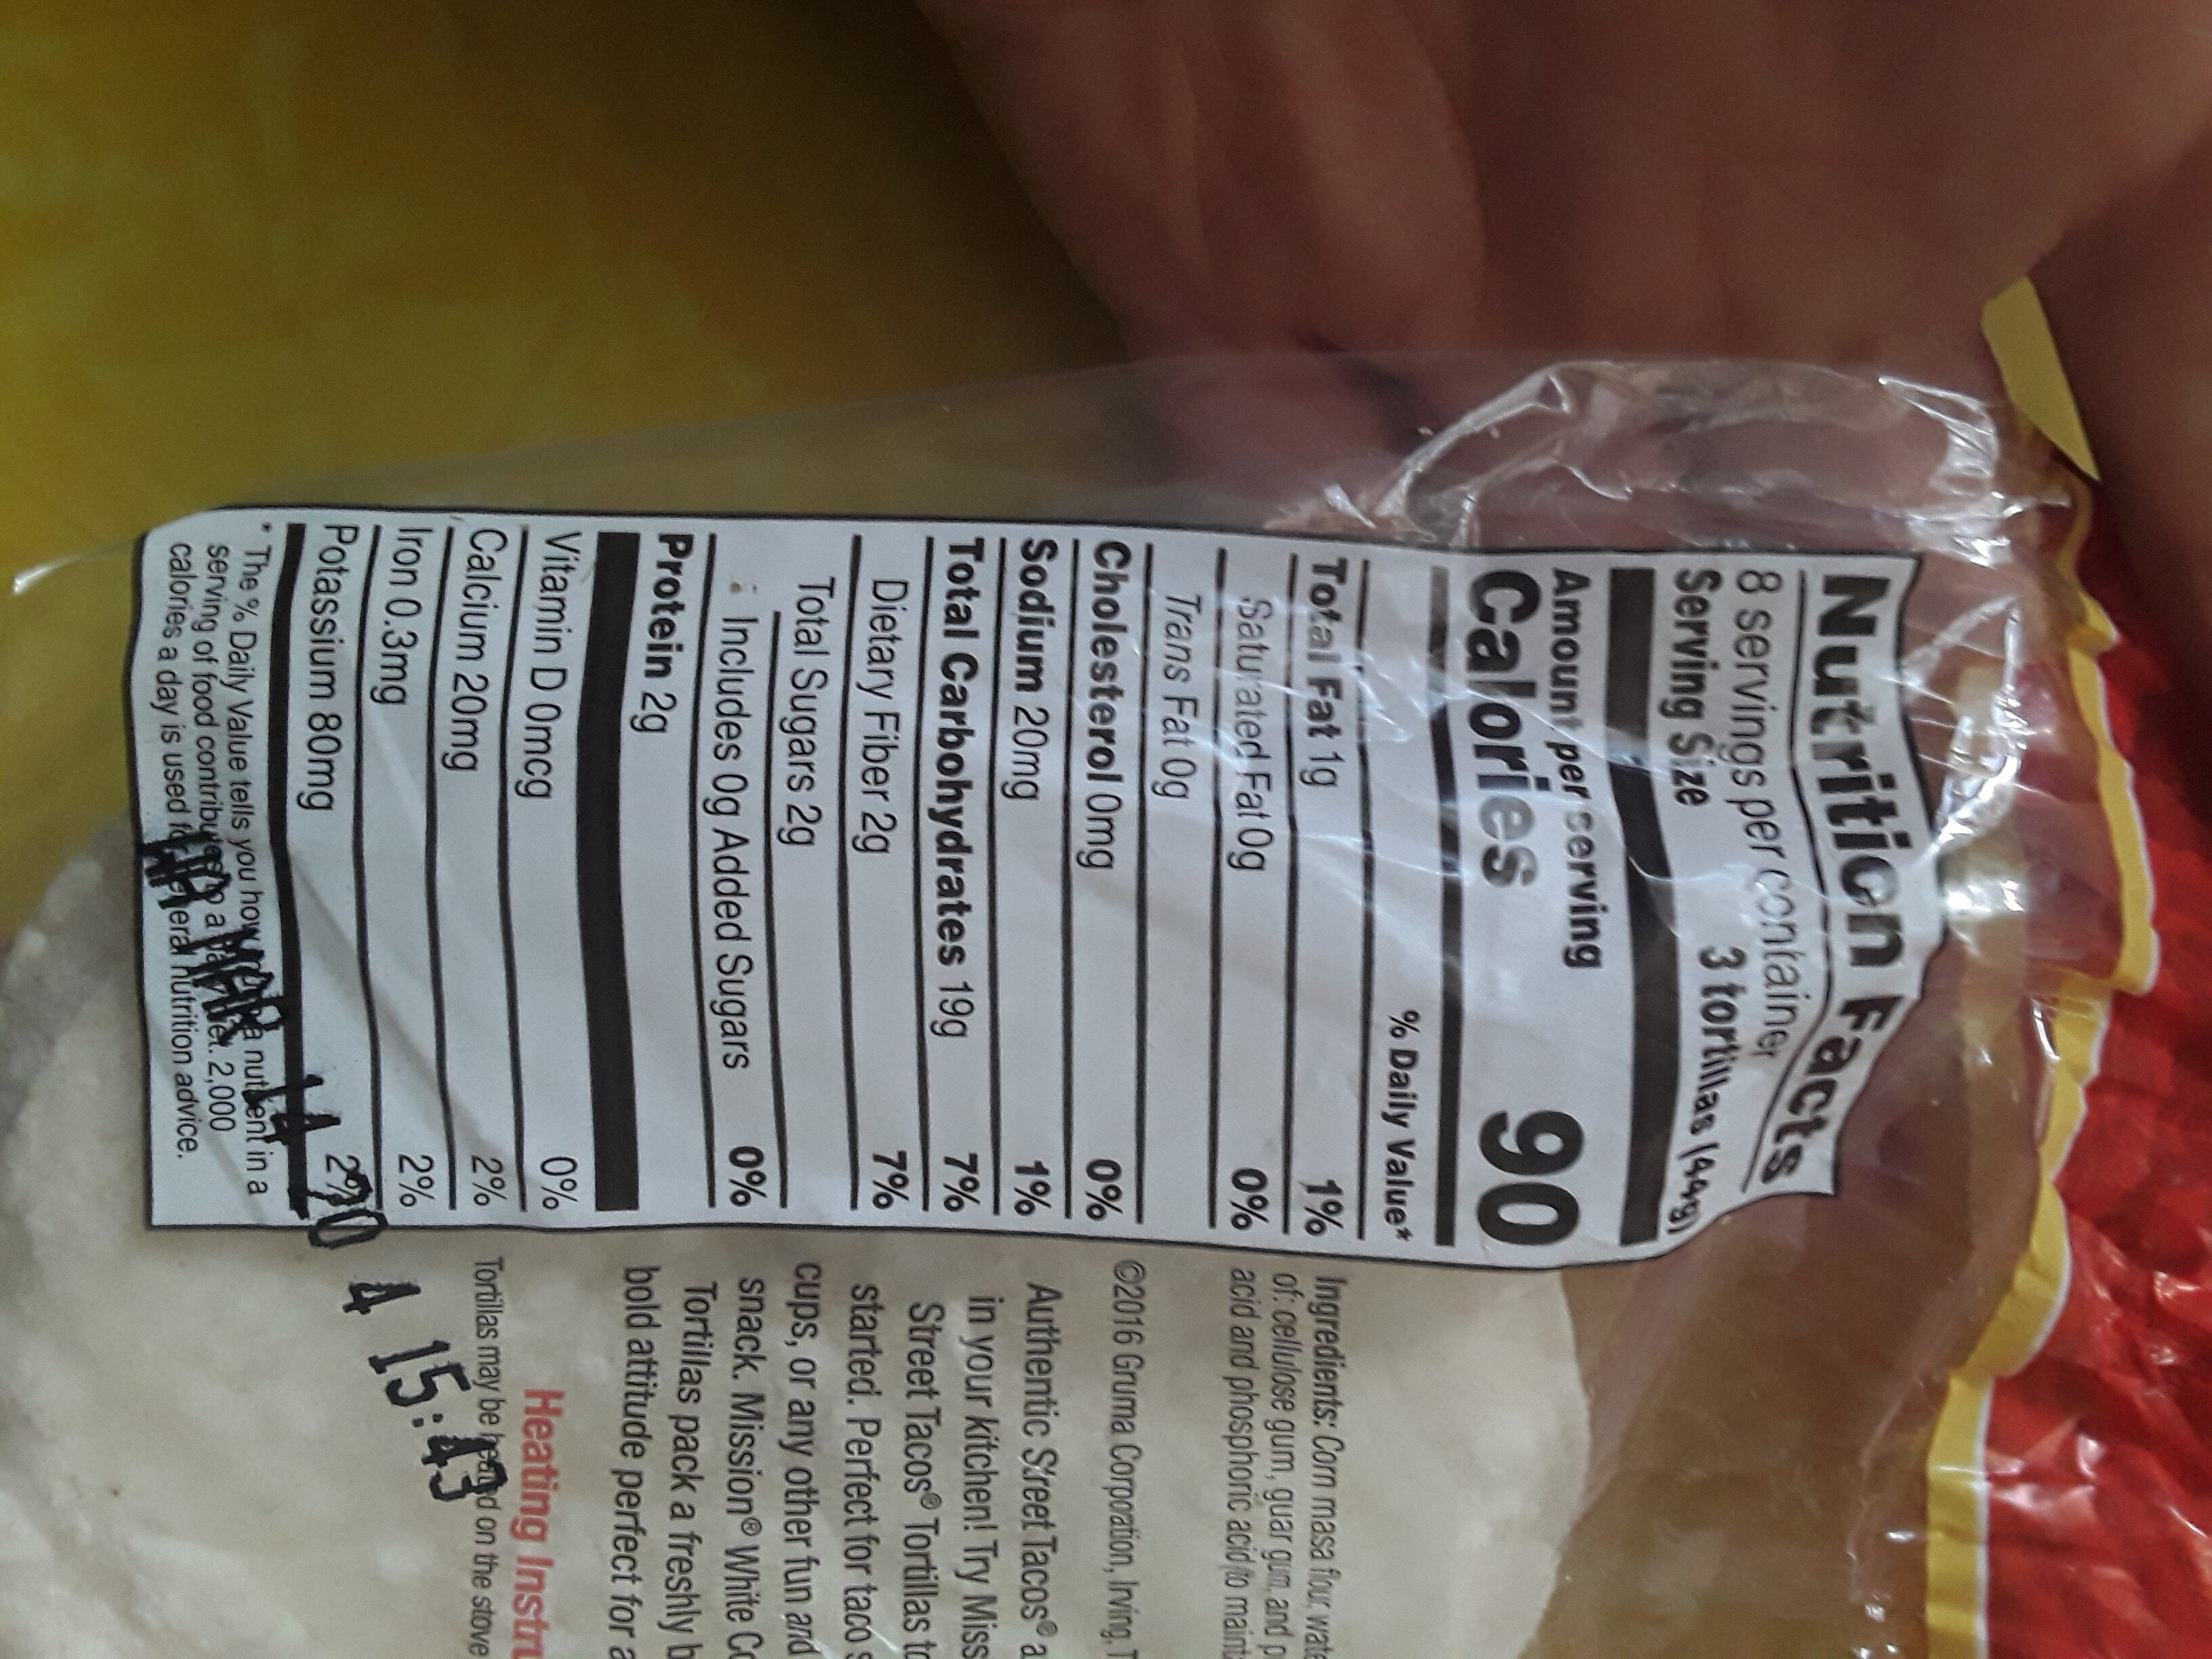 Street tacos corn tortillas - Nutrition facts - en